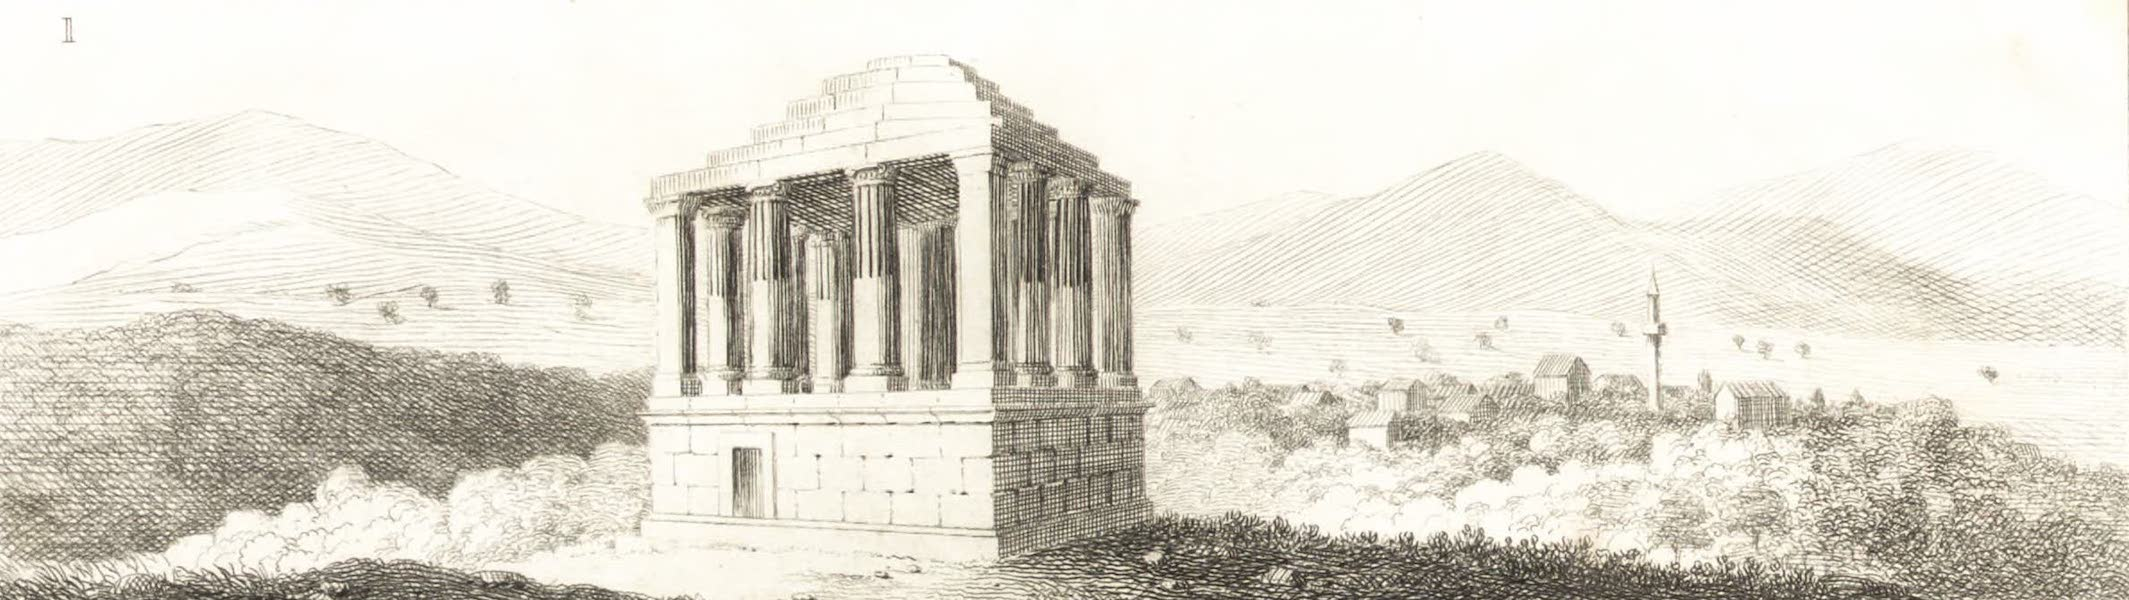 Journal of a Tour in the Levant Vol. 3 - Tomb at Melasso (1820)